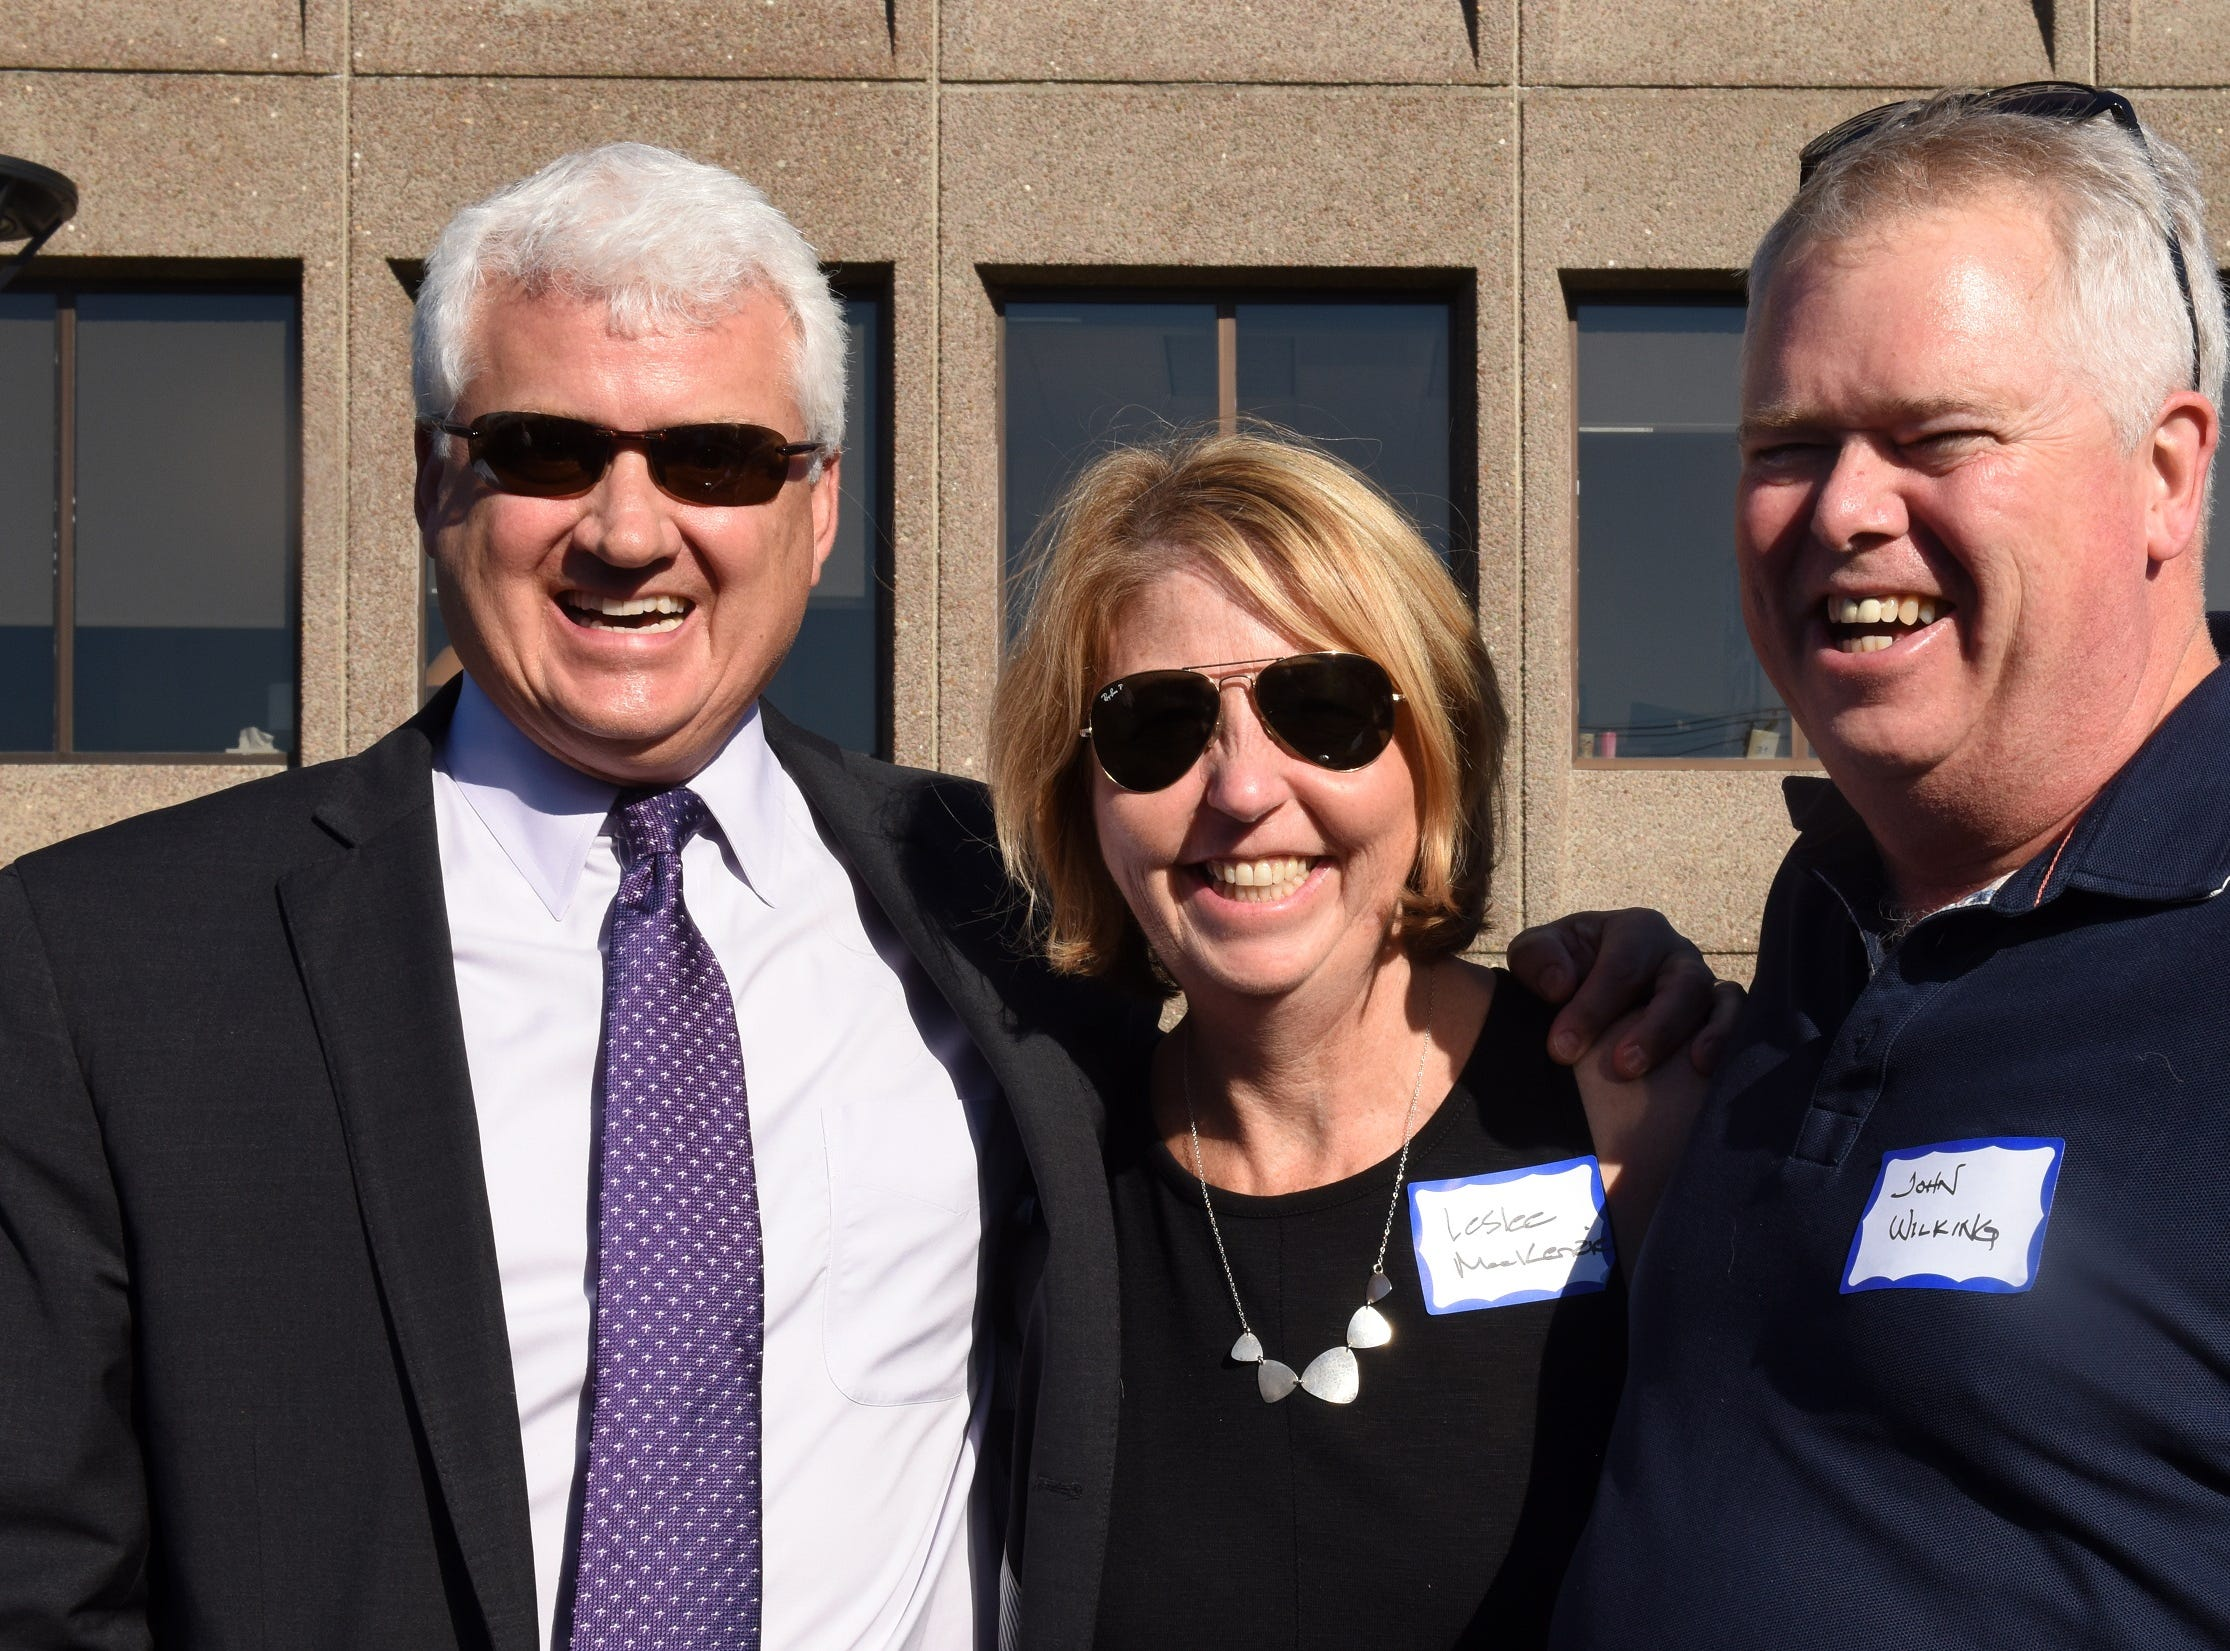 Michael Seaver of Peoples United Bank, Leslee MacKenzie of CBHB, John Wilking of Neville Companies attend the Coldwell Banker Hickok & Boardman 60th Anniversary on September 13, 2018, with current and past agents and community leaders in Burlington, VT.